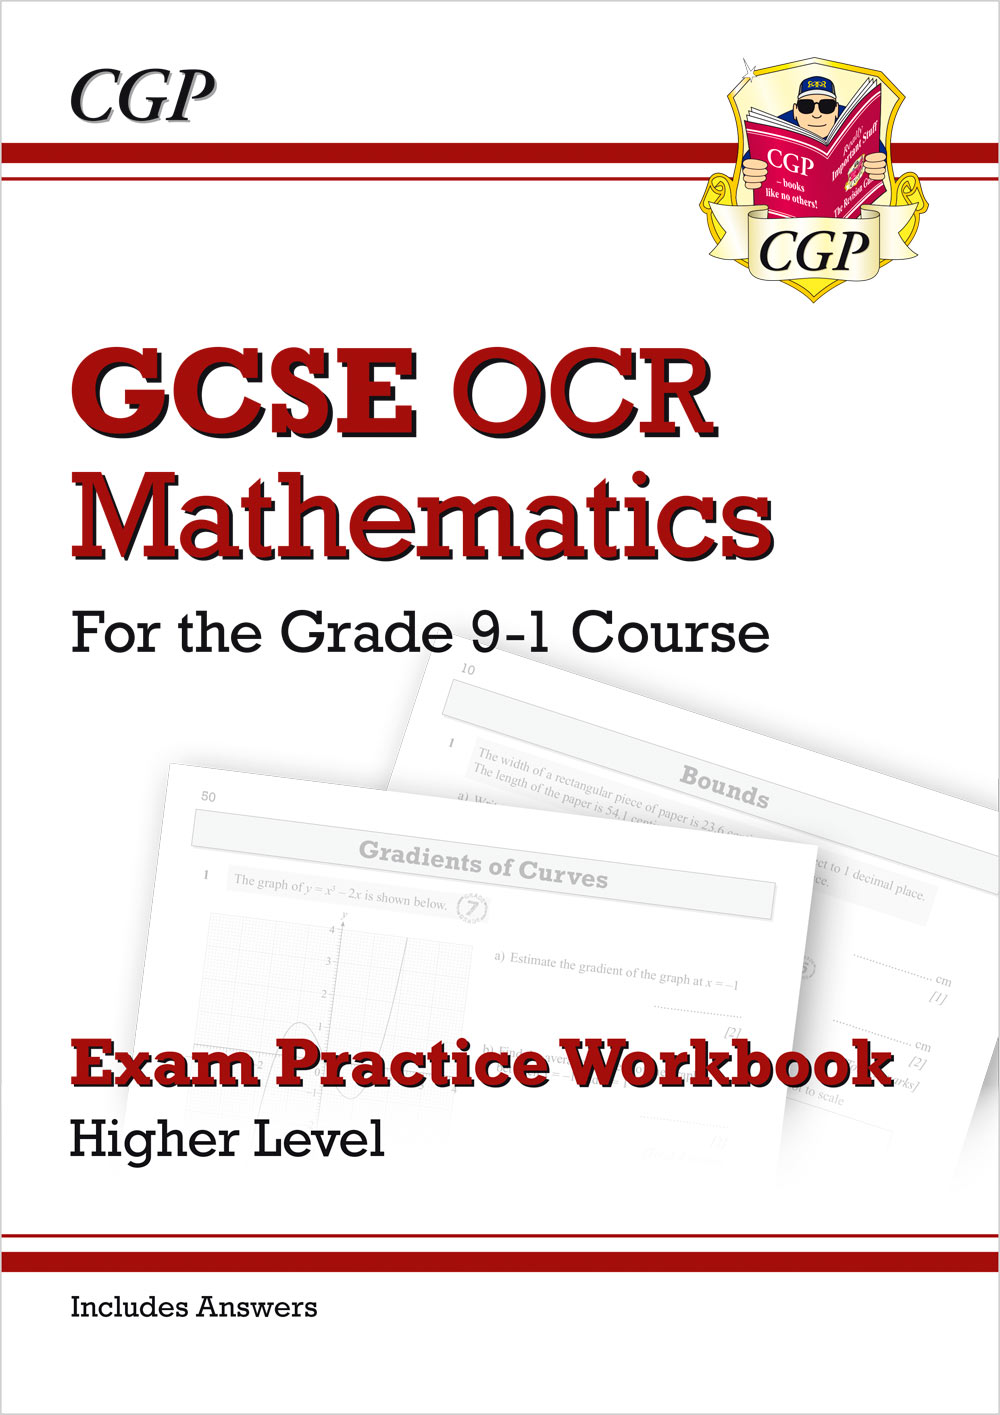 MCHQ42 - GCSE Maths OCR Exam Practice Workbook: Higher - for the Grade 9-1 Course (includes Answers)